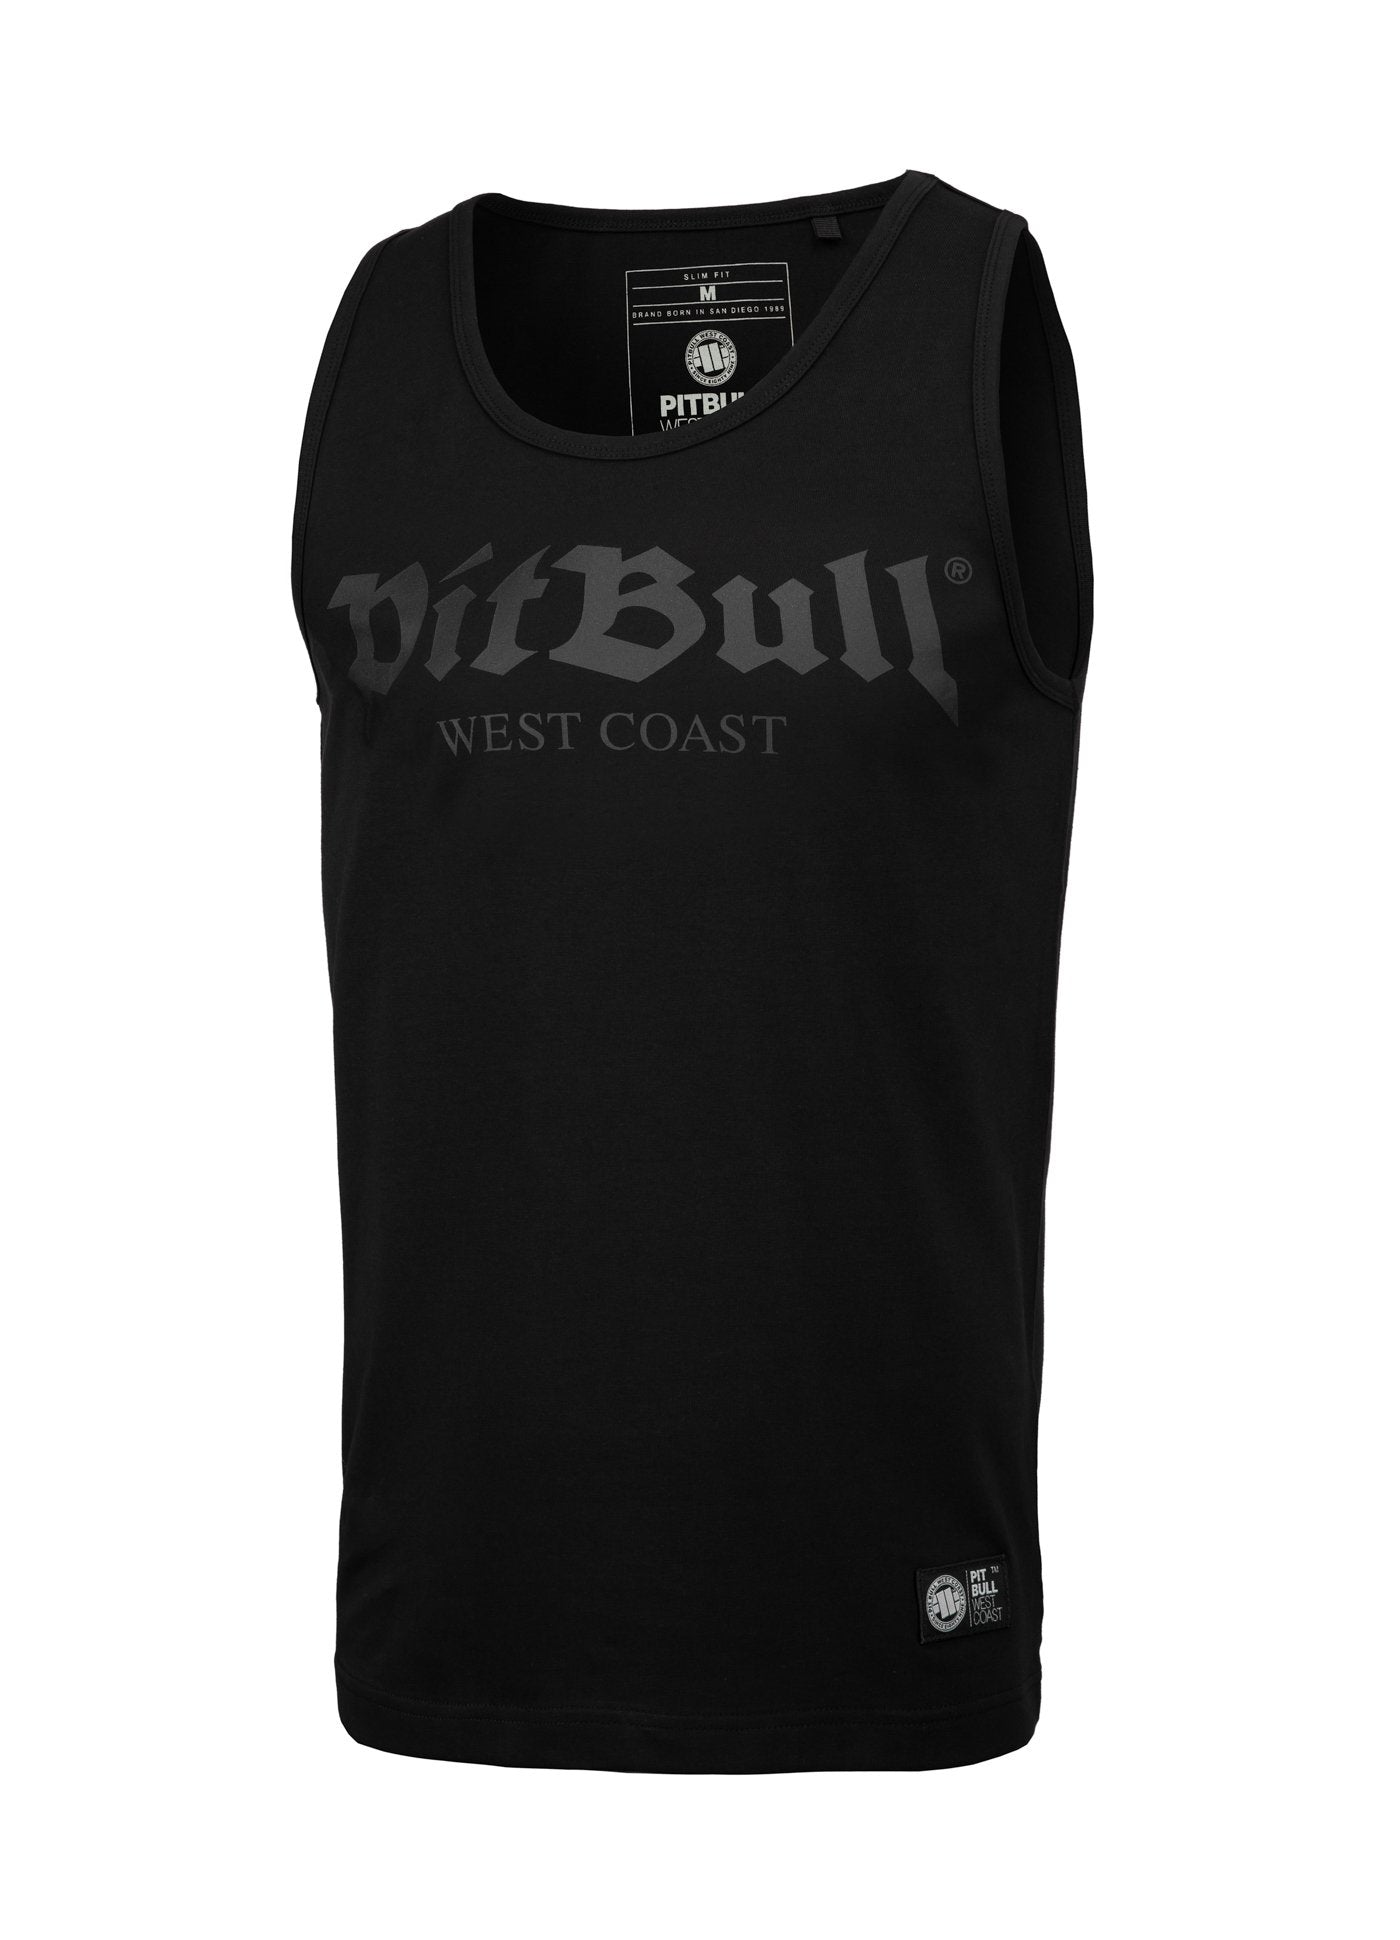 Tank Top Slim Fit Old Logo Black - pitbullwestcoast